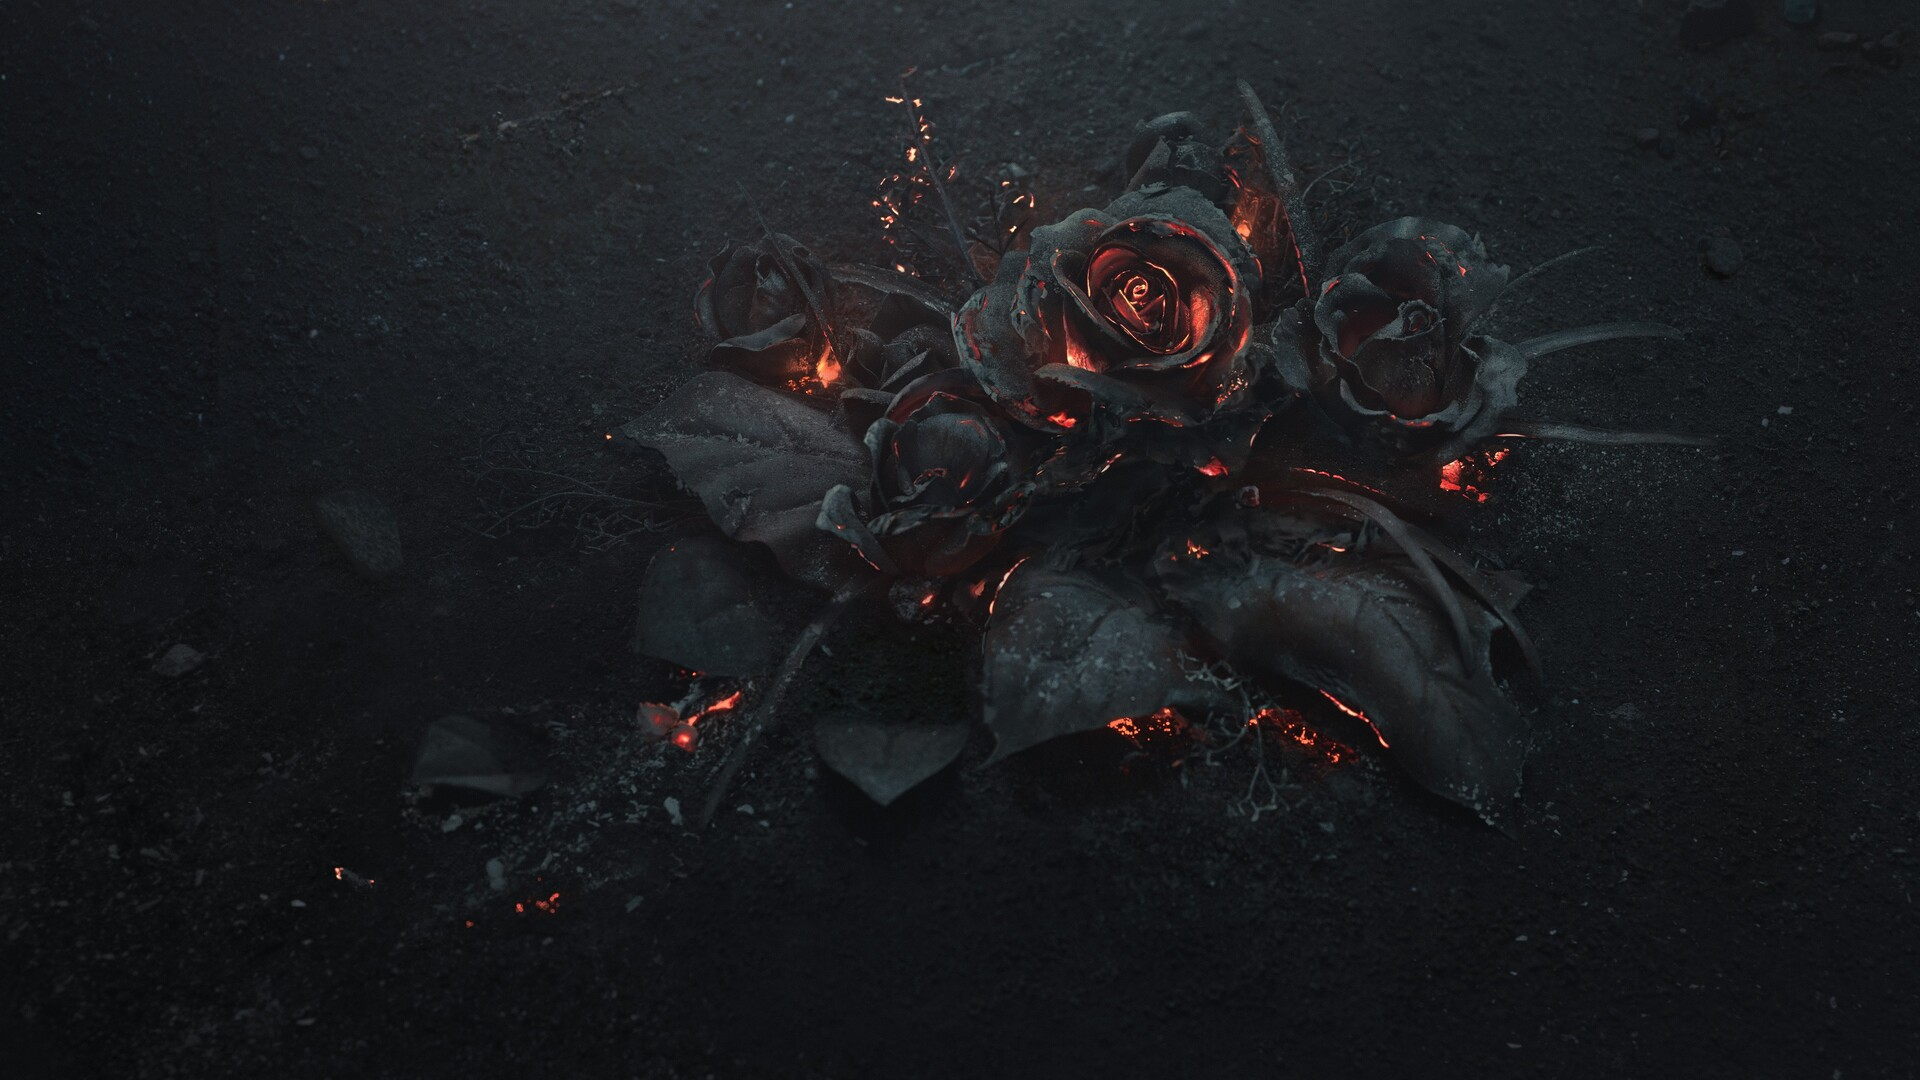 1920x1080 Burning Roses 5k Laptop Full Hd 1080p Hd 4k Wallpapers Images Backgrounds Photos And Pictures